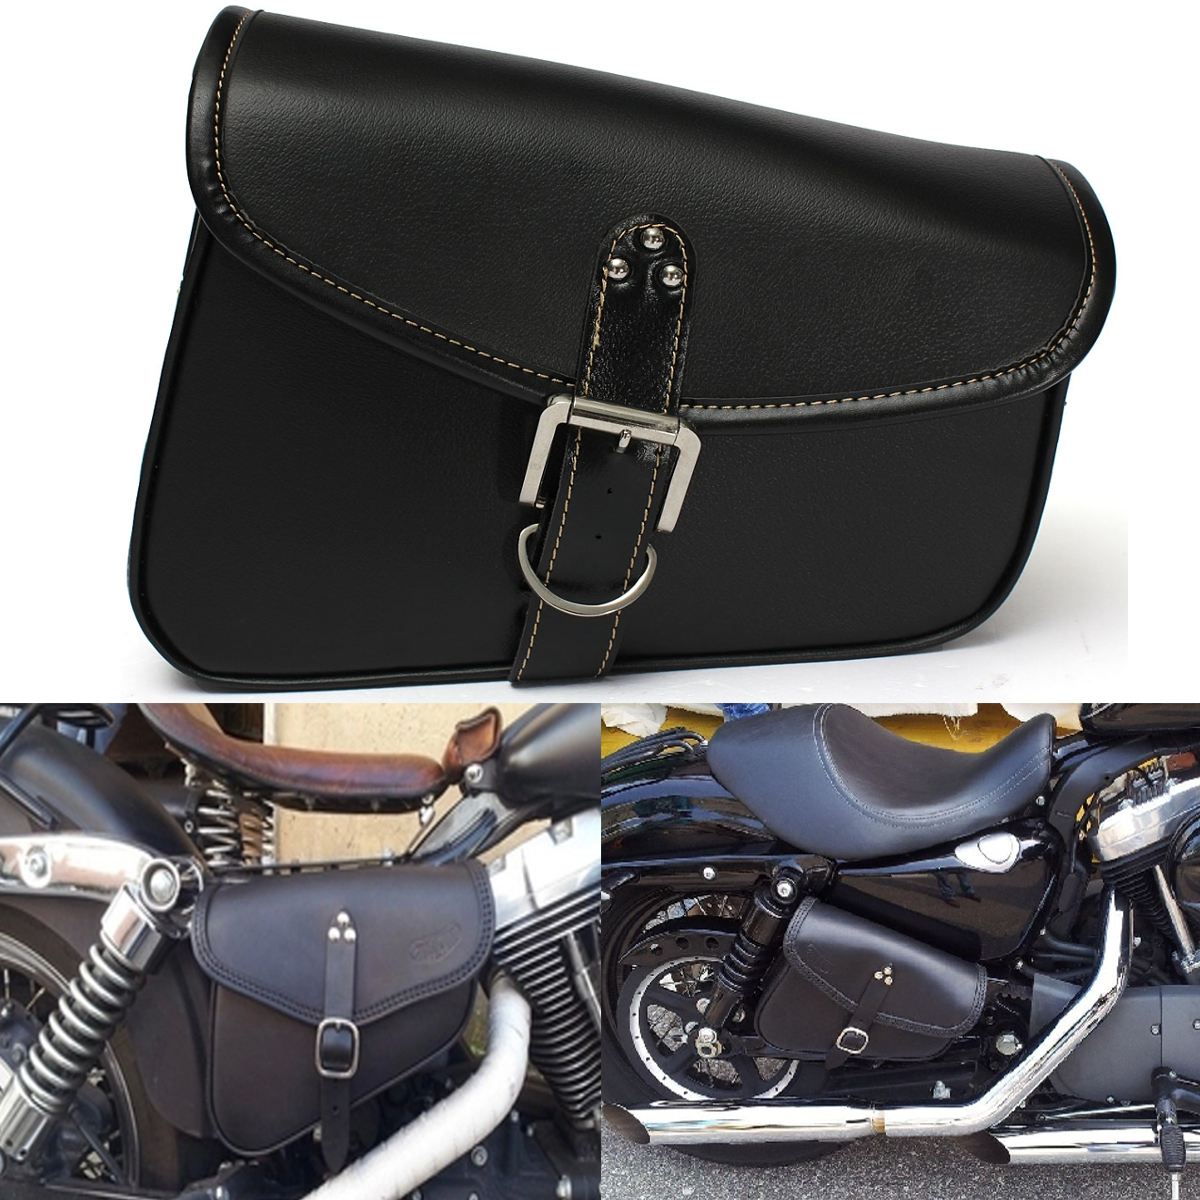 1 Pcs Motorcycle Saddlebag Leather Luggage Storage Bag Bike Cycl